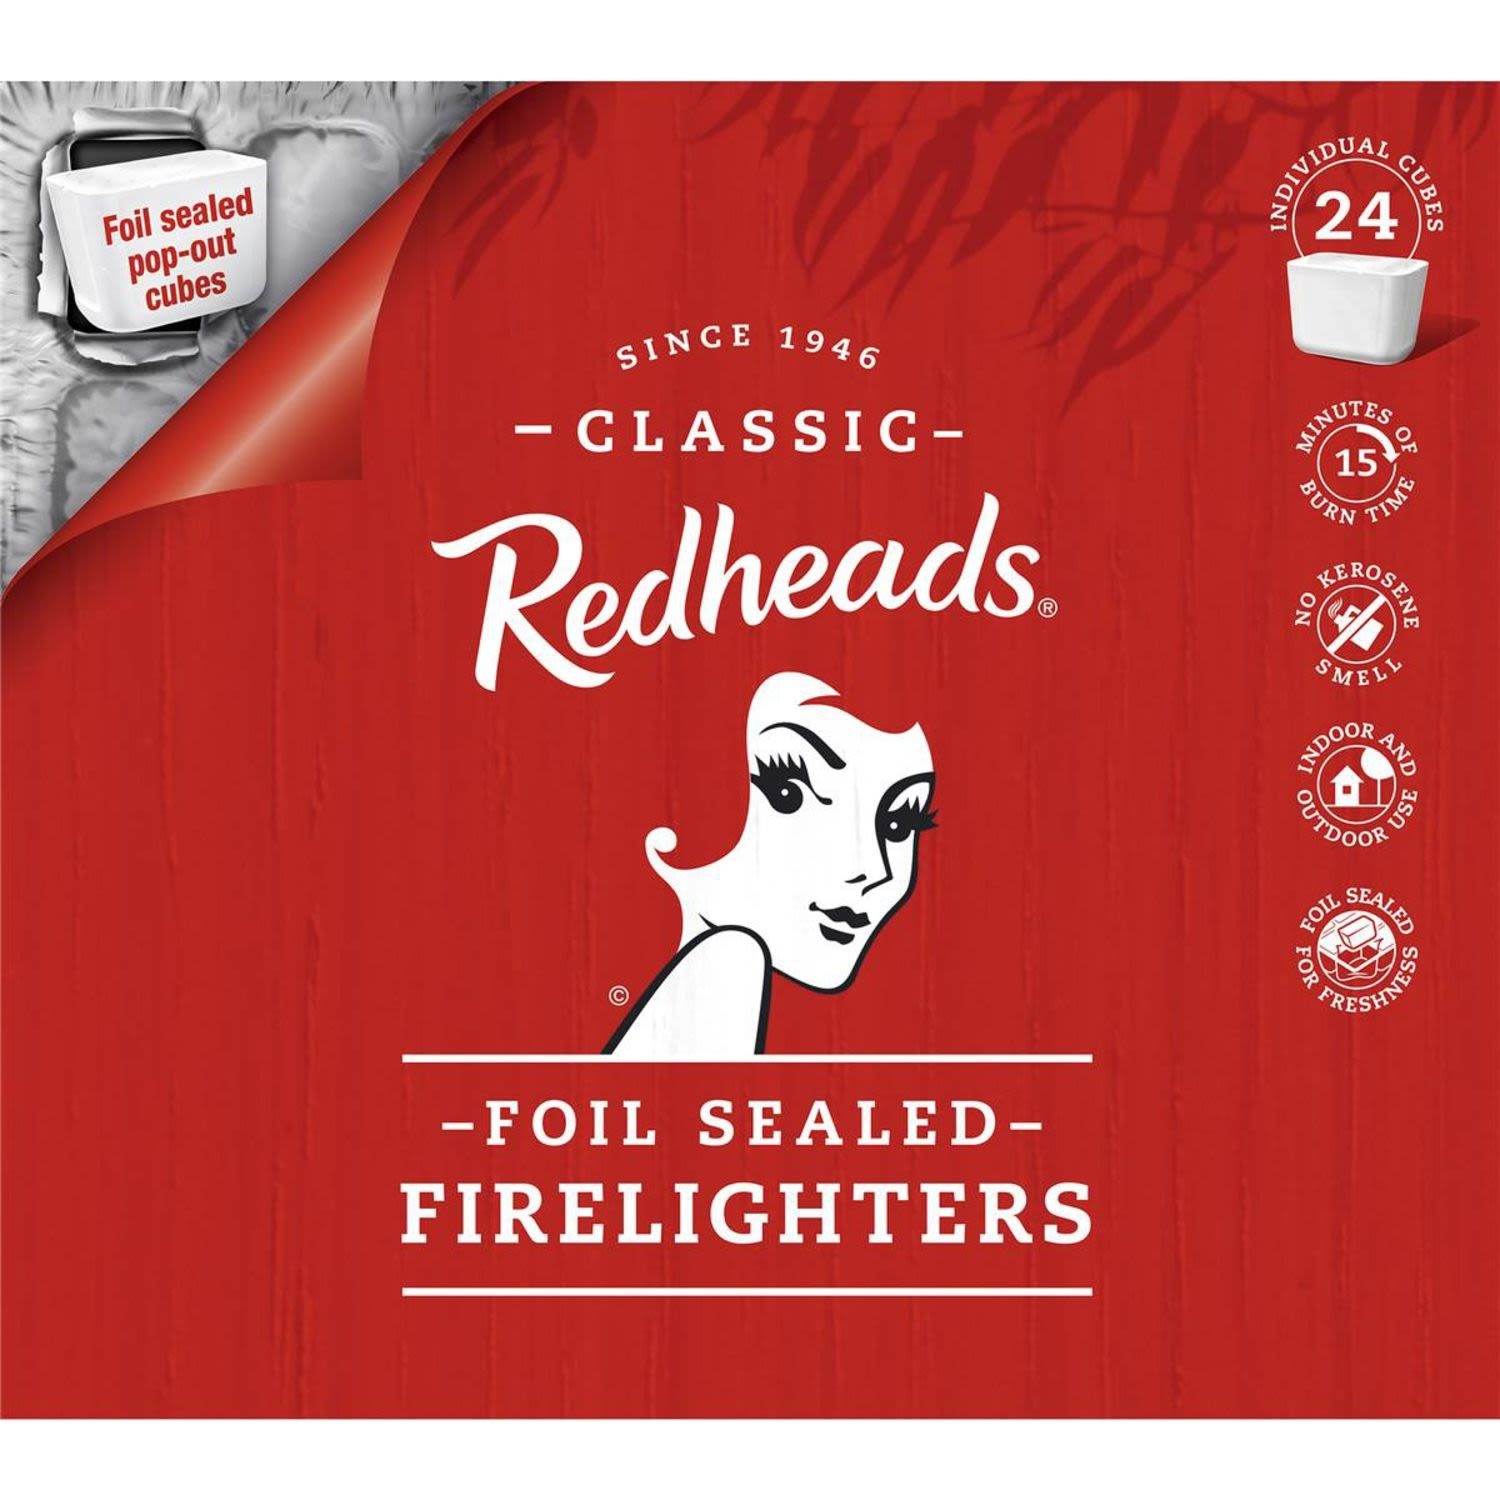 Redheads Foil-sealed Firelighters Fire Lighters, 24 Each